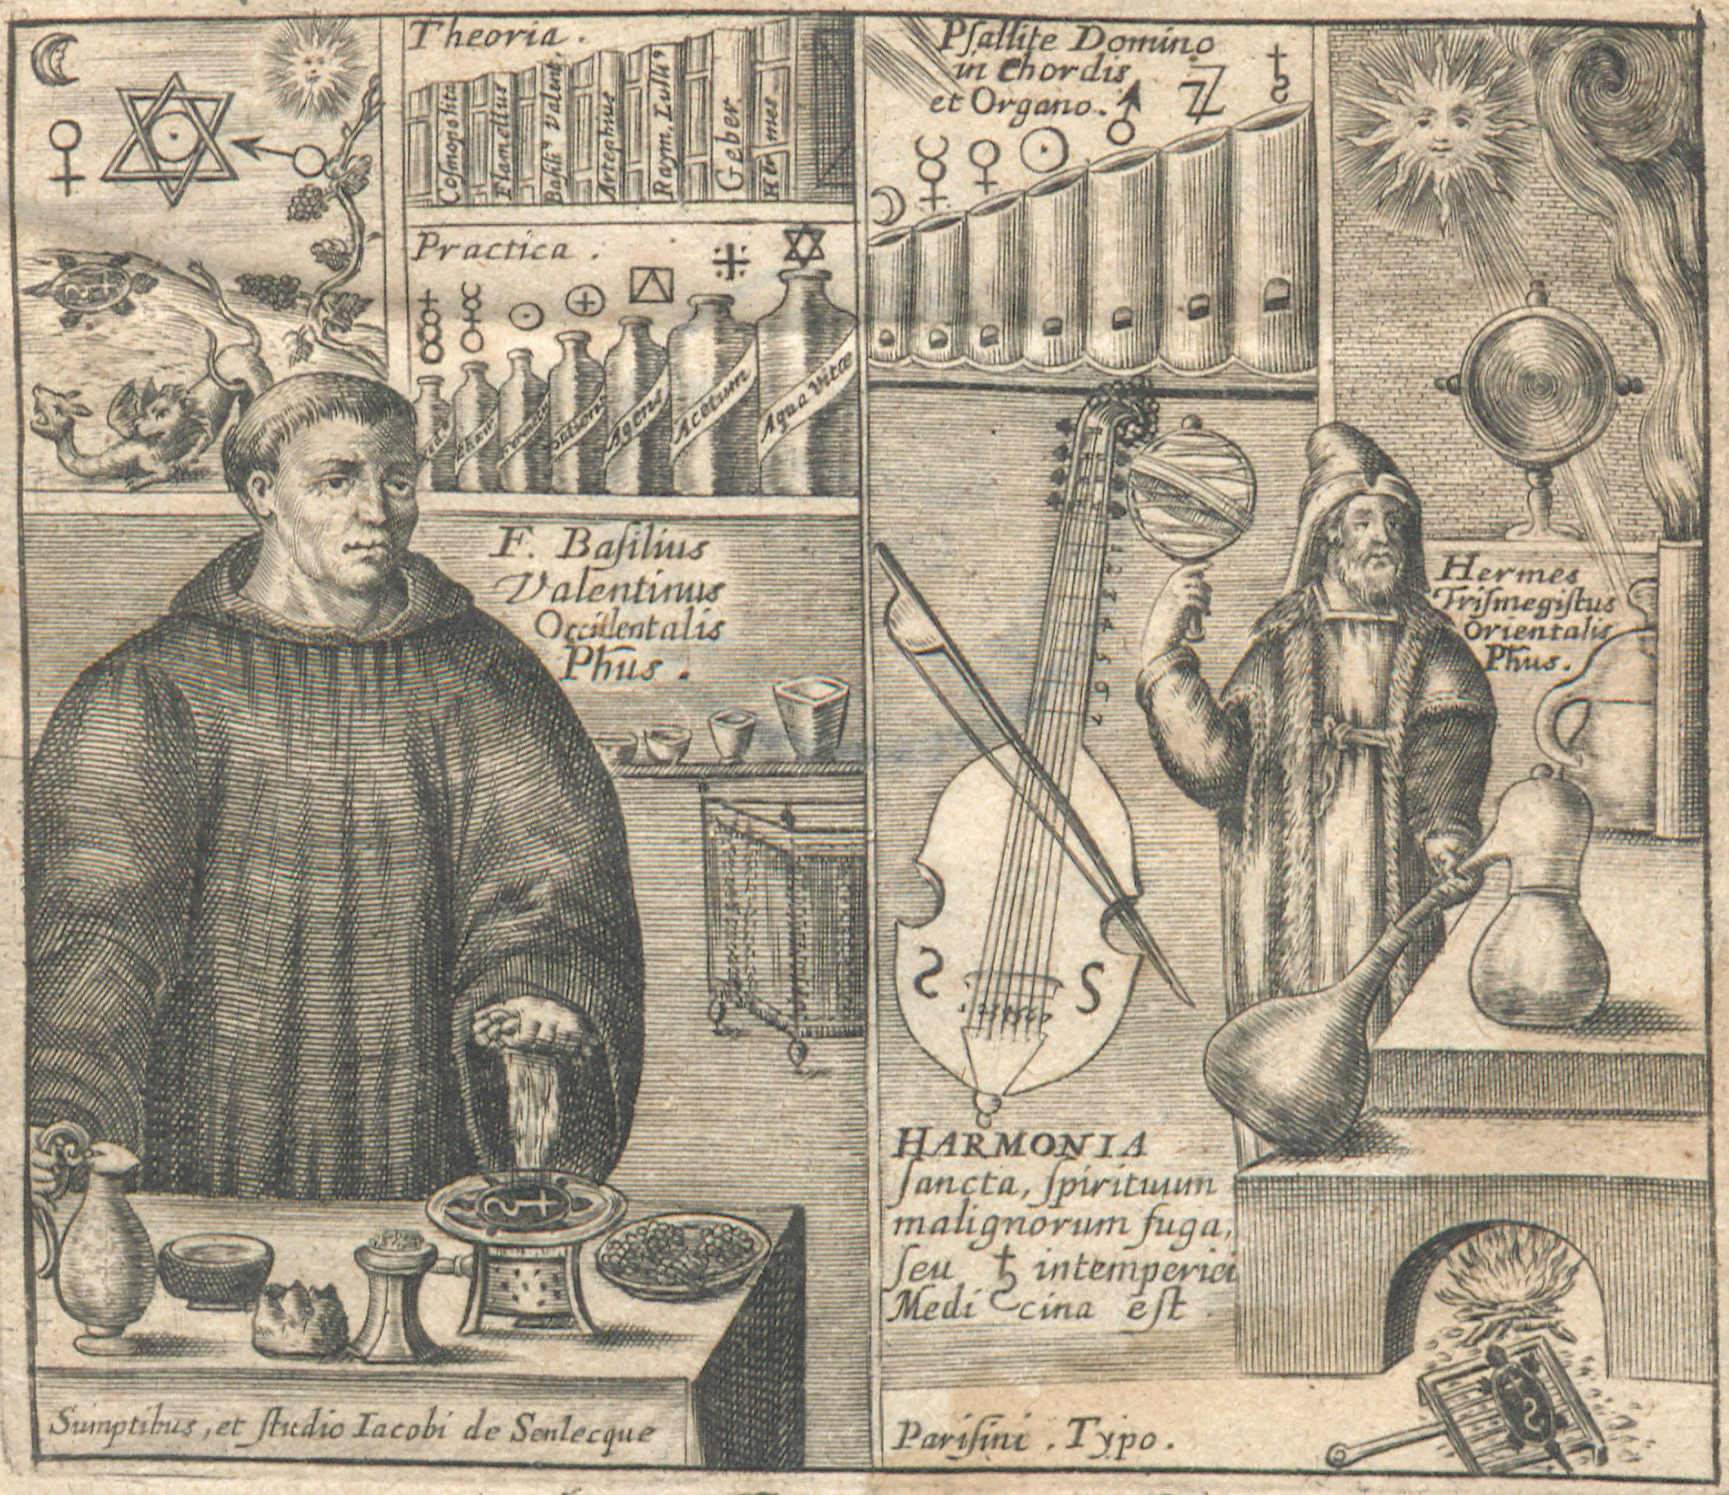 The frontispiece for Revelation des mysteres (Revelation of Mysteries) depicts a split image. On the left-hand side: a robed figure presides over various materials; in the background there are numerous vessels, books, symbols, and a small vignette of mythical creatures. On the right-hand side: A heavily cloaked man in a hat is surrounded by various instruments and experiments in progress.